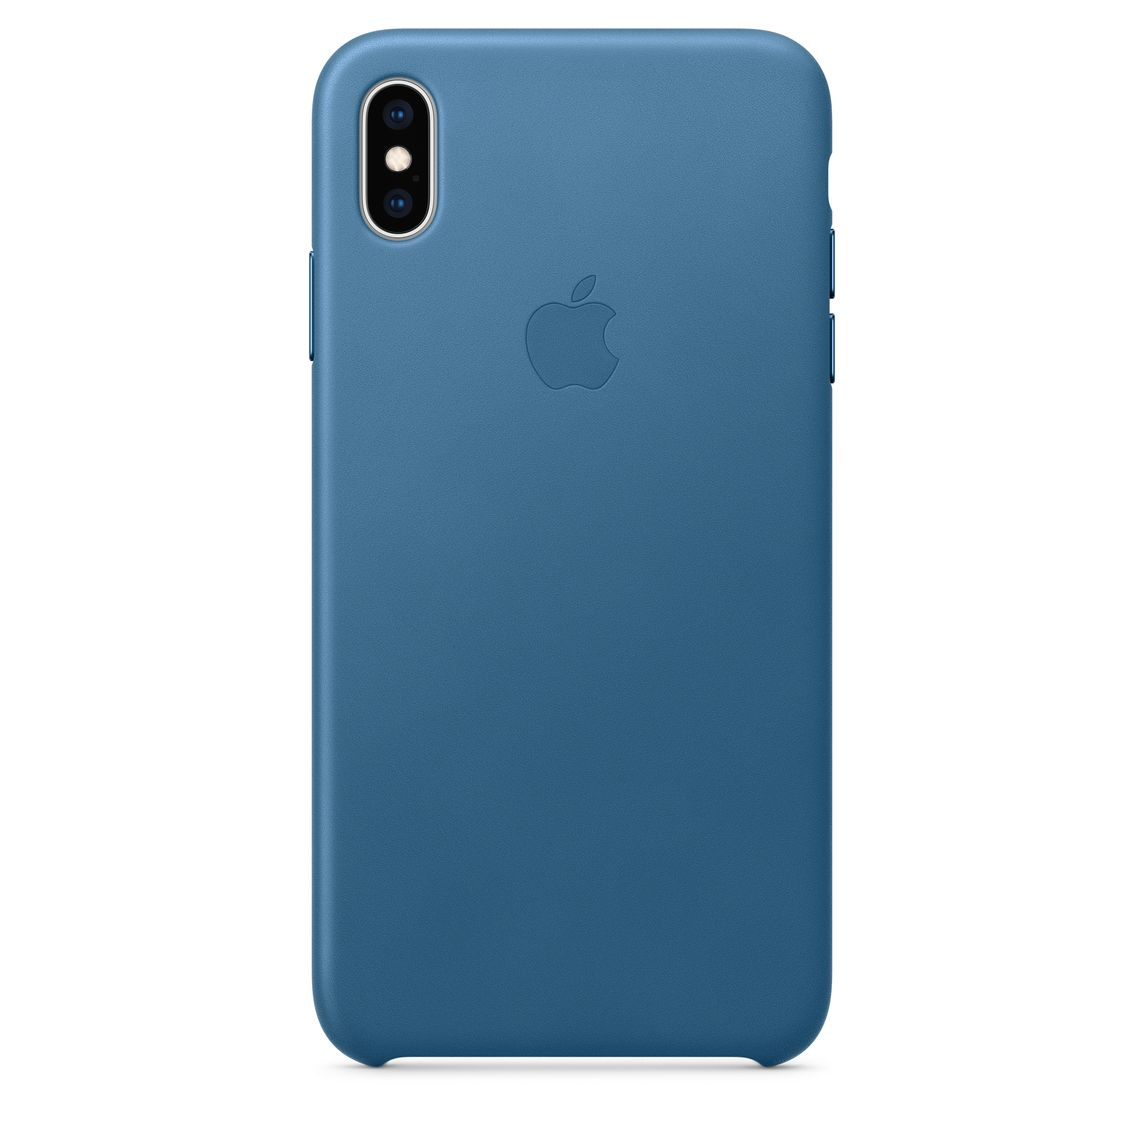 online retailer 4baf3 ce64b iPhone XS Max Leather Case - Cape Cod Blue